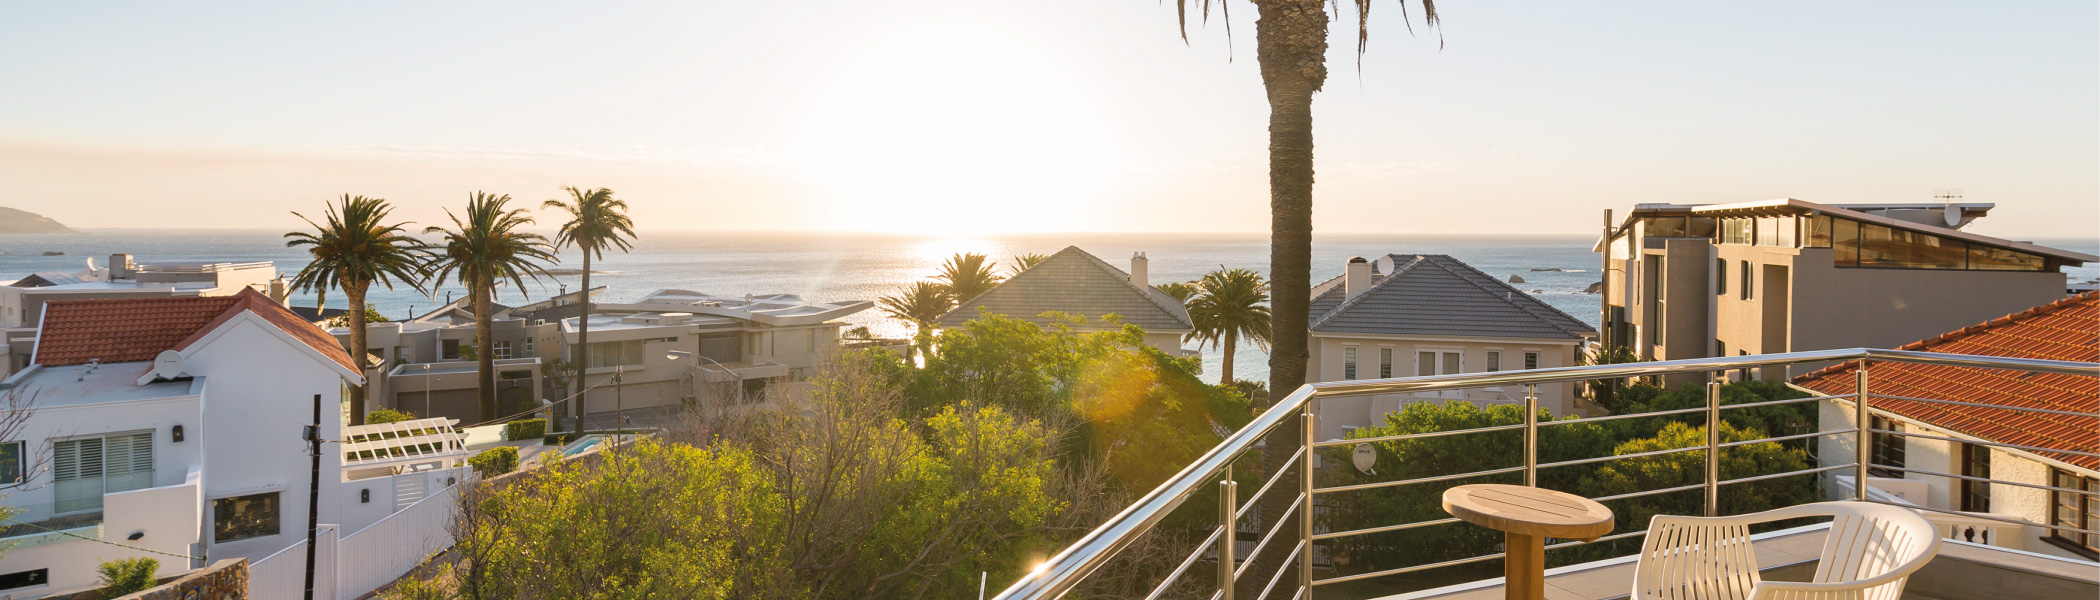 camps-bay-retreat-rooms-3